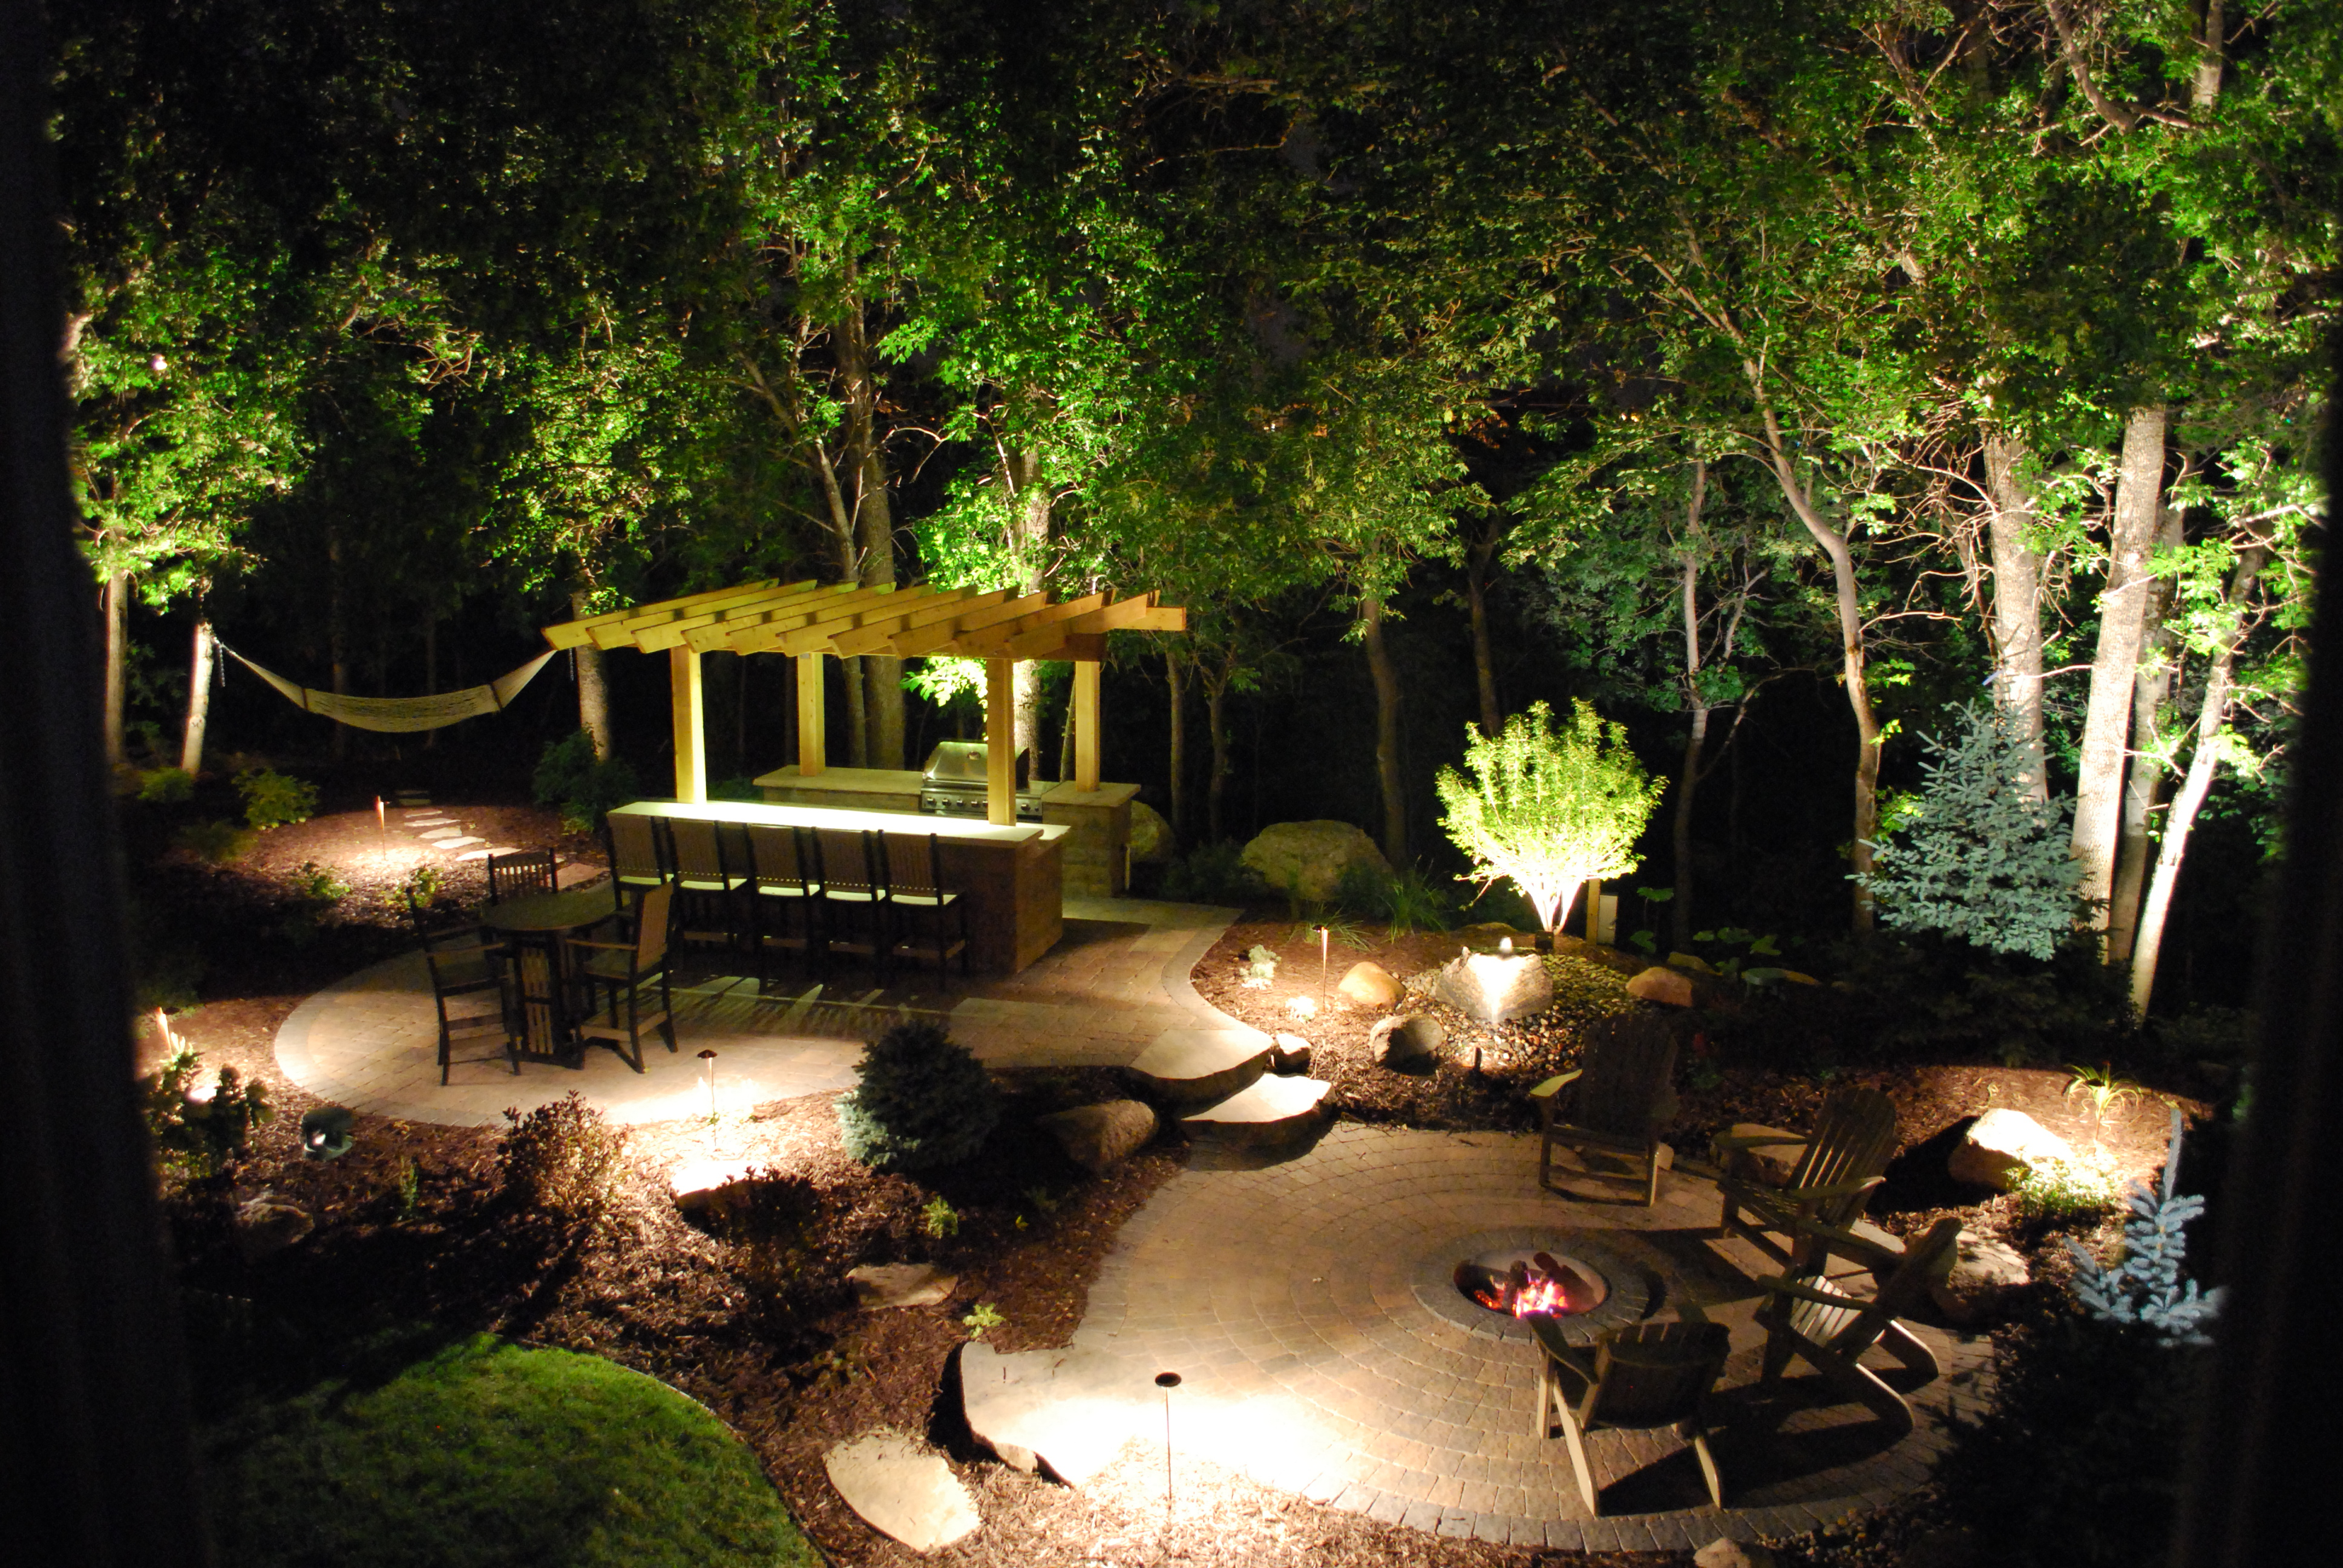 Good Looking Outdoor String Lighting Ideas Target Lowes Deck Led with Backyard String Lighting Ideas